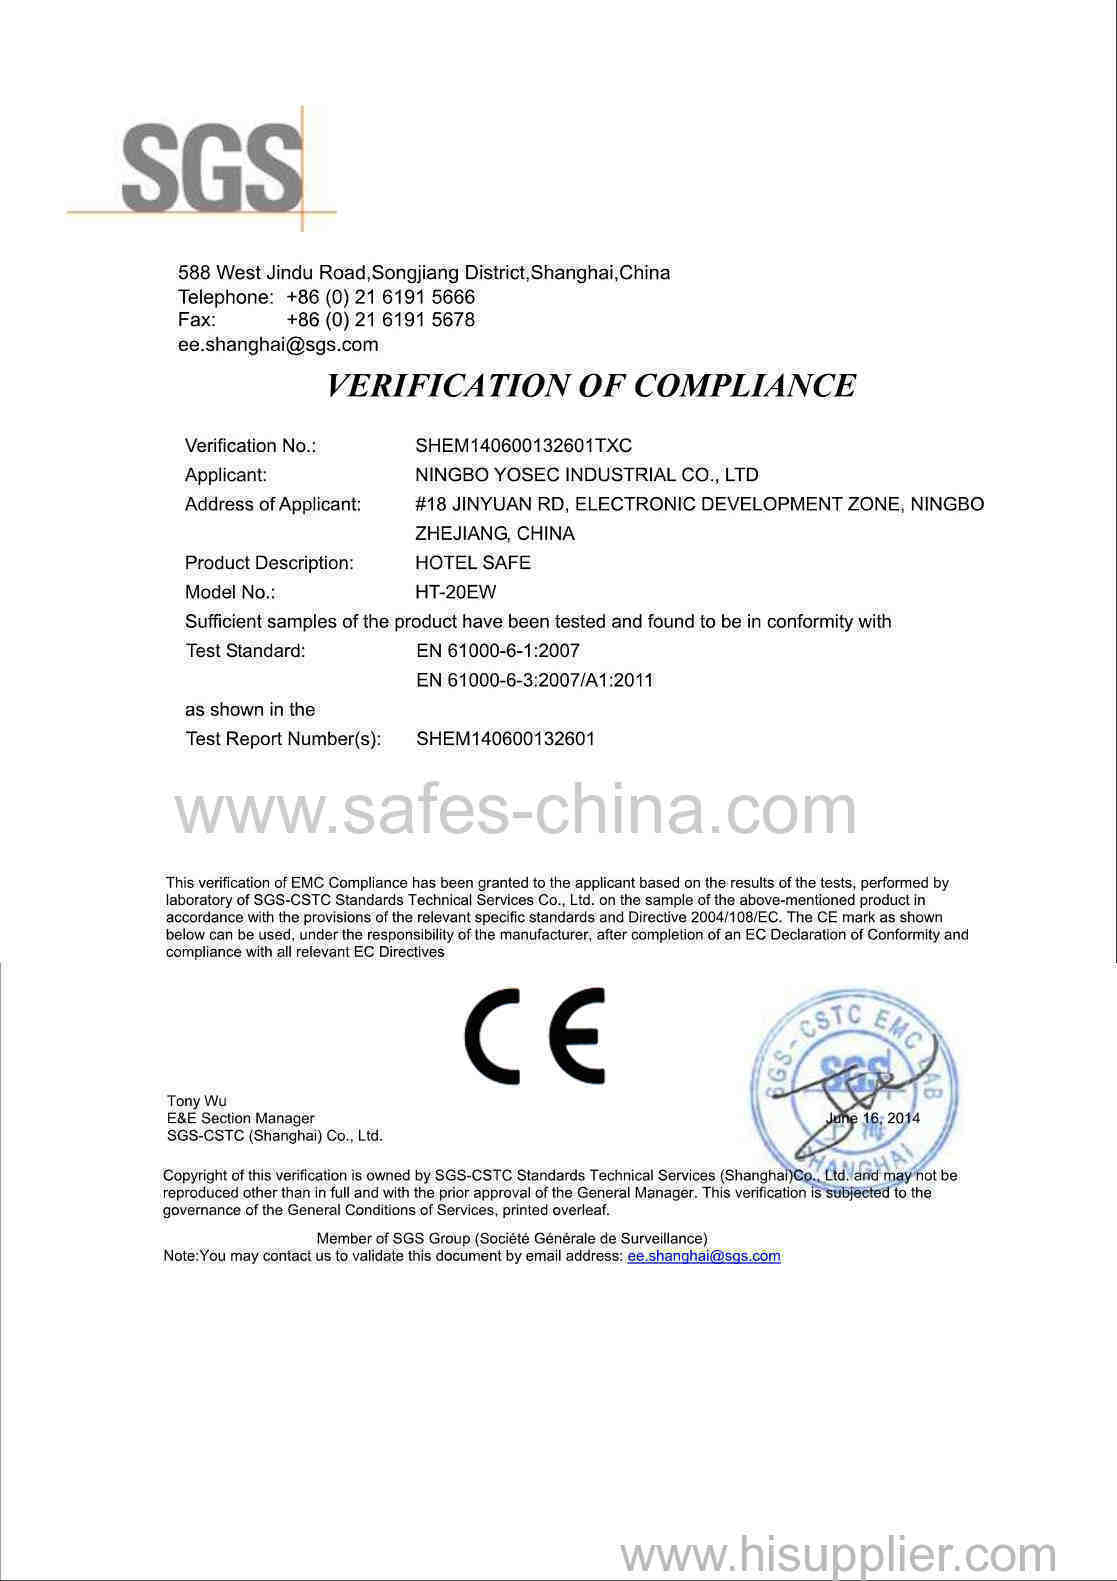 CE Certification for hotel safe HT-20EW